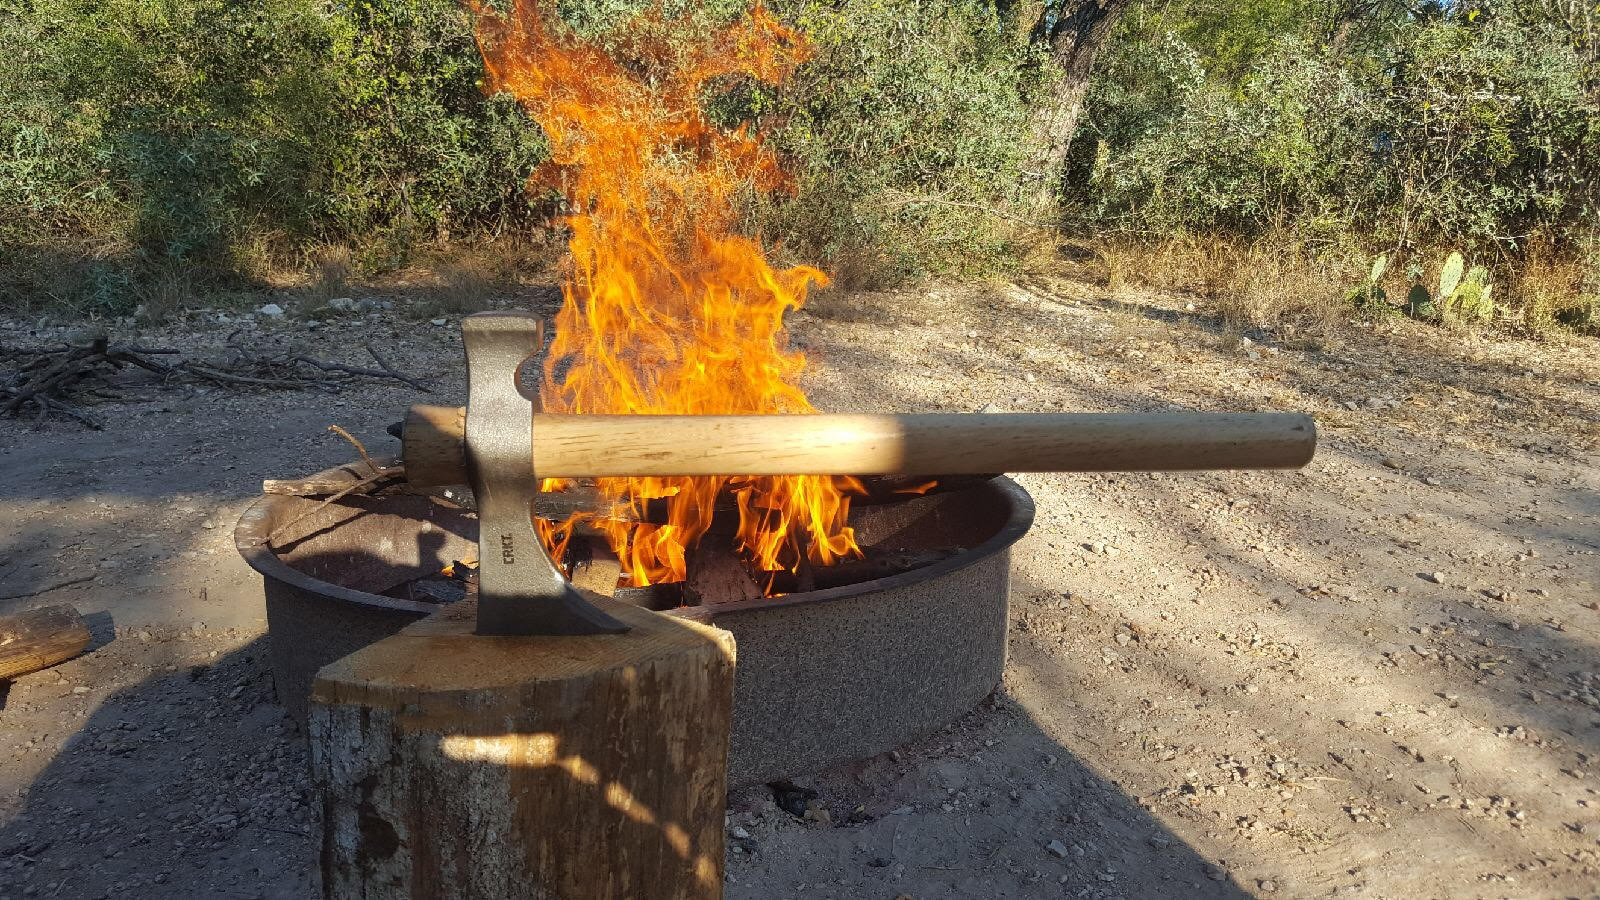 Campfires and hatchets